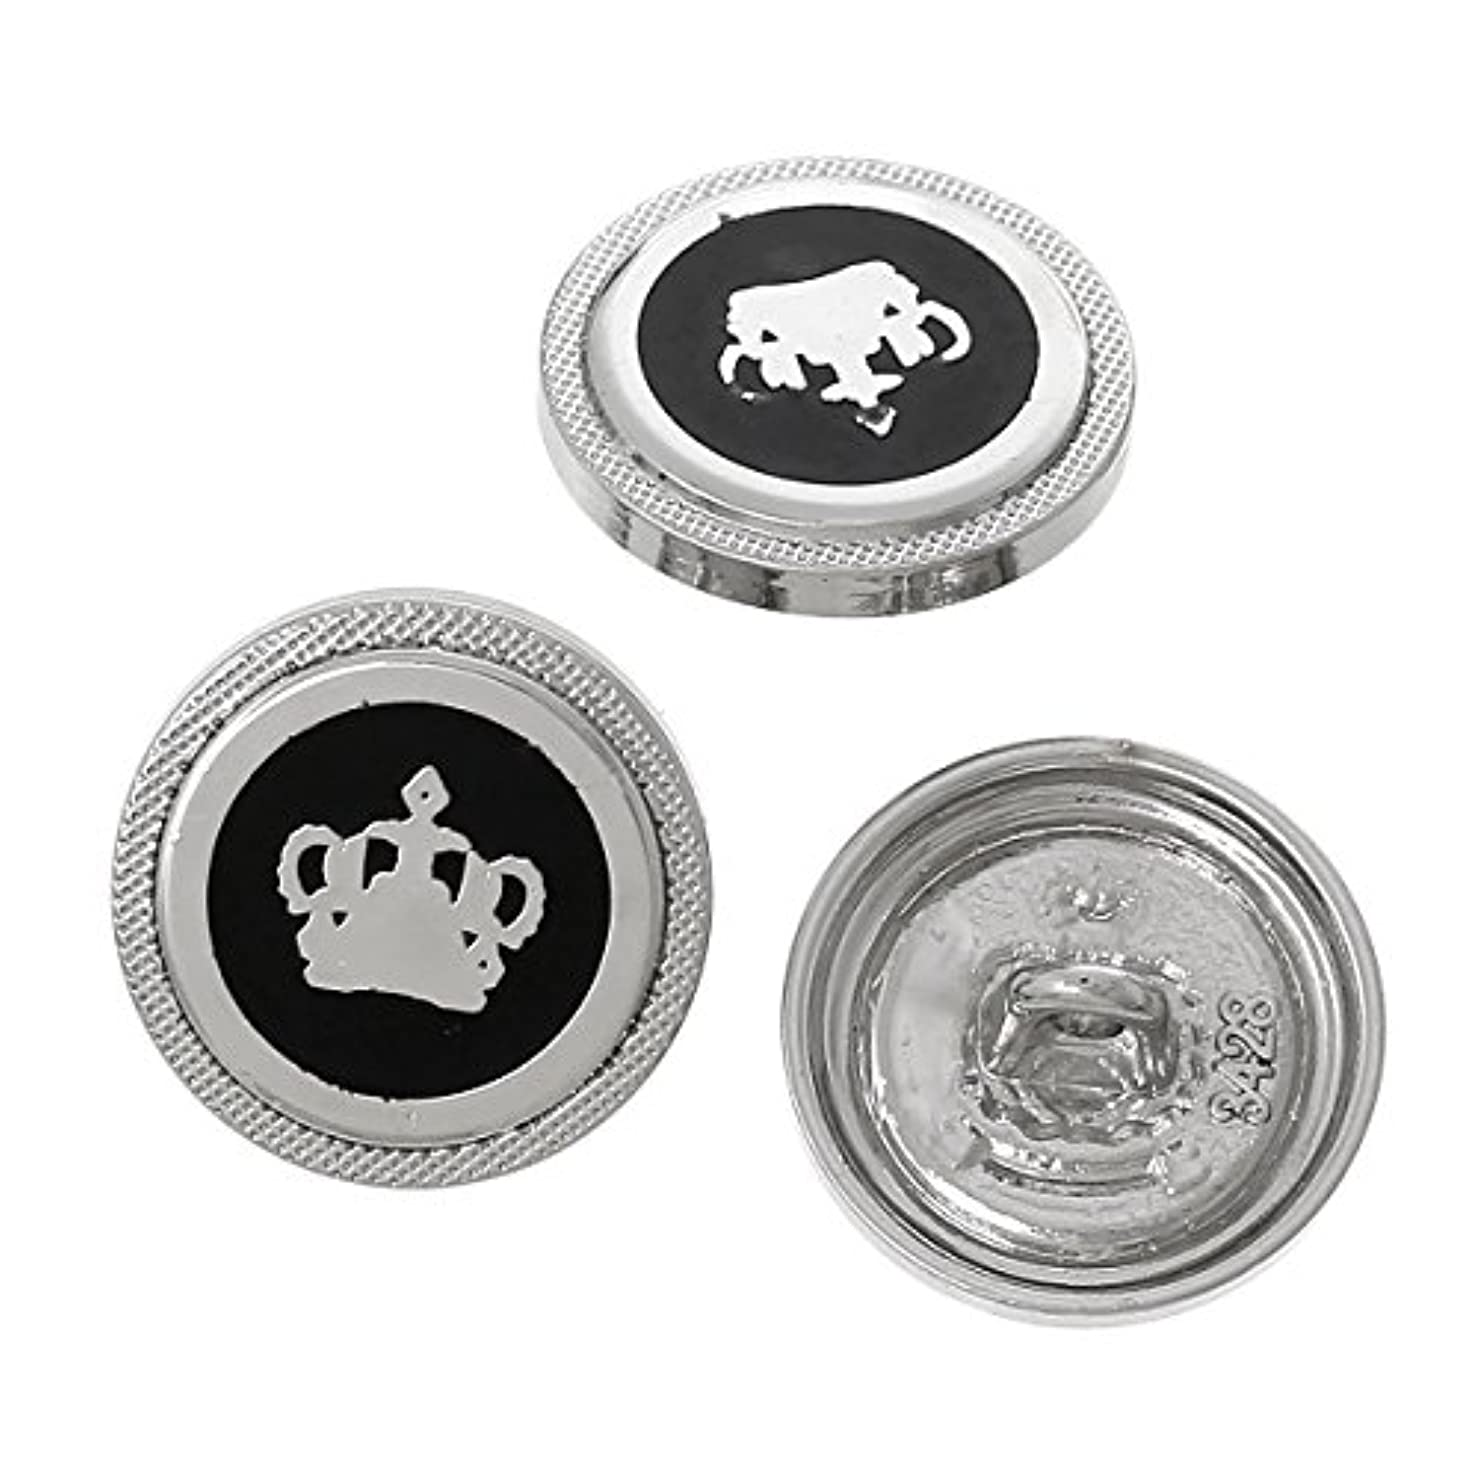 PEPPERLONELY Brand 10PC Silver Tone Enamel Crown Pattern Scrapbooking Metal Sewing Button with Shank 18mm (3/4 Inch) kxd1808848121